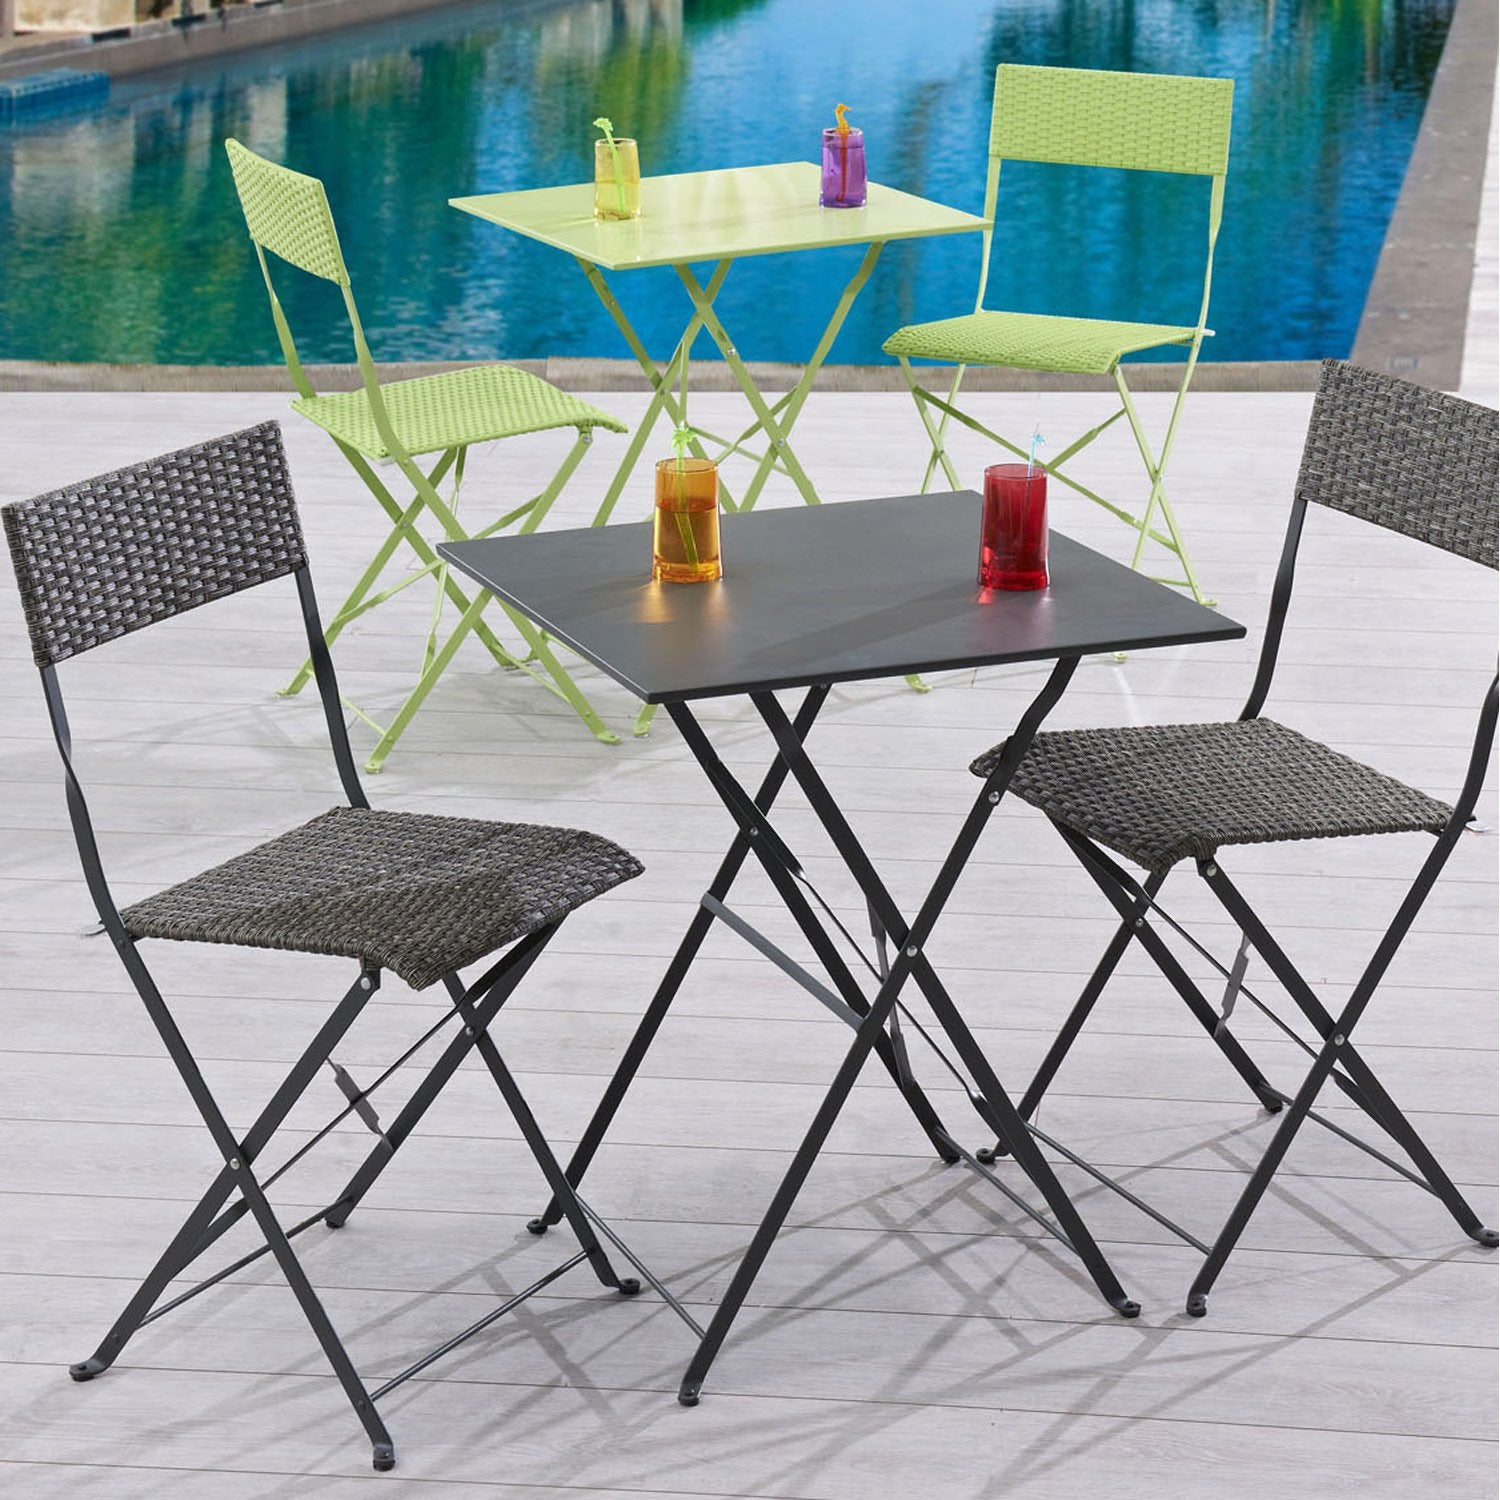 salon de jardin mezzo acier gris 1 table gueridon 2 chaises leroy merlin. Black Bedroom Furniture Sets. Home Design Ideas